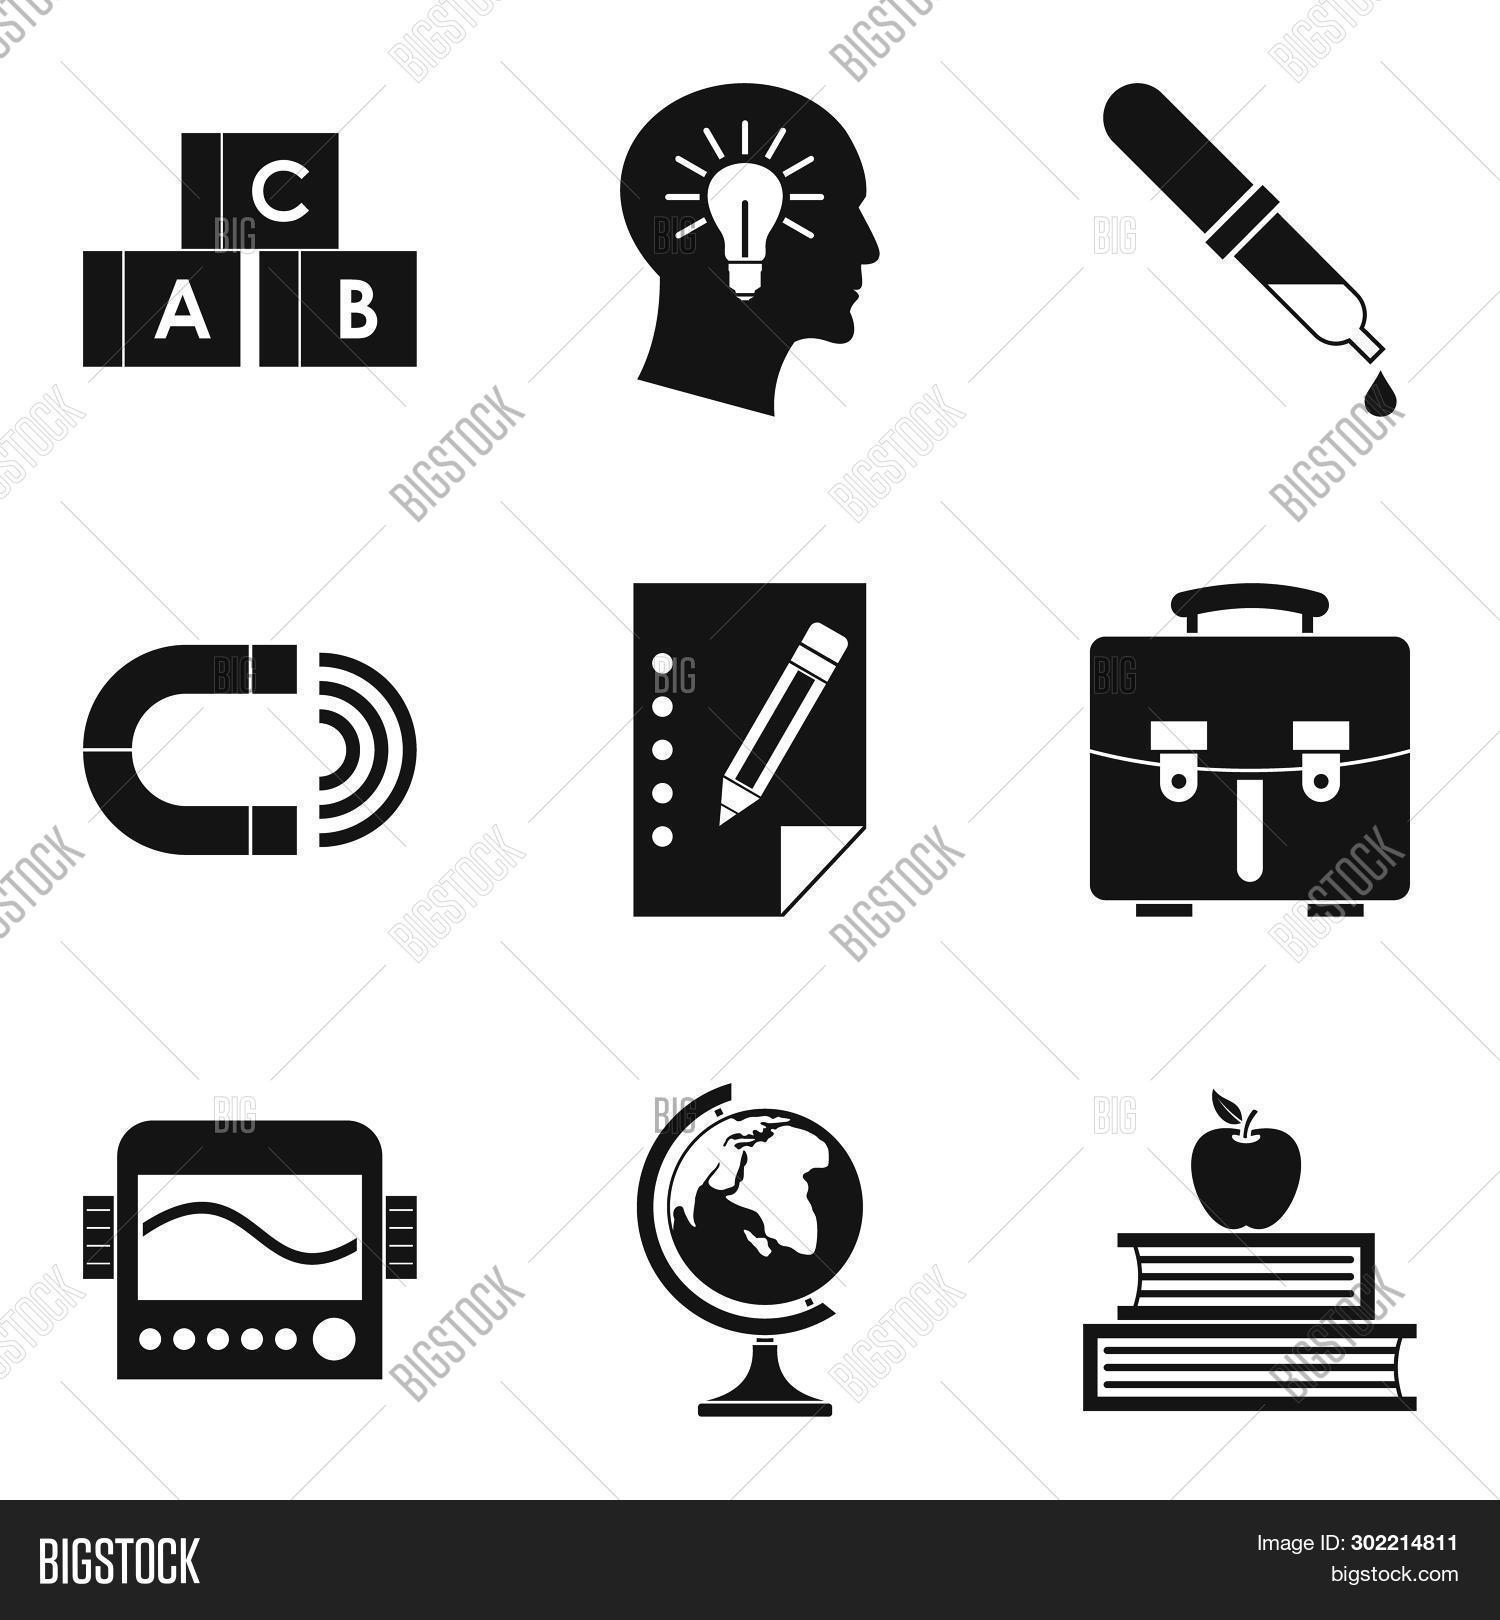 academic,academy,astronomy,auditorium,award,bachelor,black,cartoon,case,ceremony,certificate,chemistry,collection,college,computer,education,group,history,icons,illustration,isolated,learning,lecturer,library,literature,medal,open,pencil,people,person,postgraduate,preparation,professor,project,research,scholarly,scholarship,science,seminar,set,simple,student,study,teacher,technology,undergraduate,universal,university,world